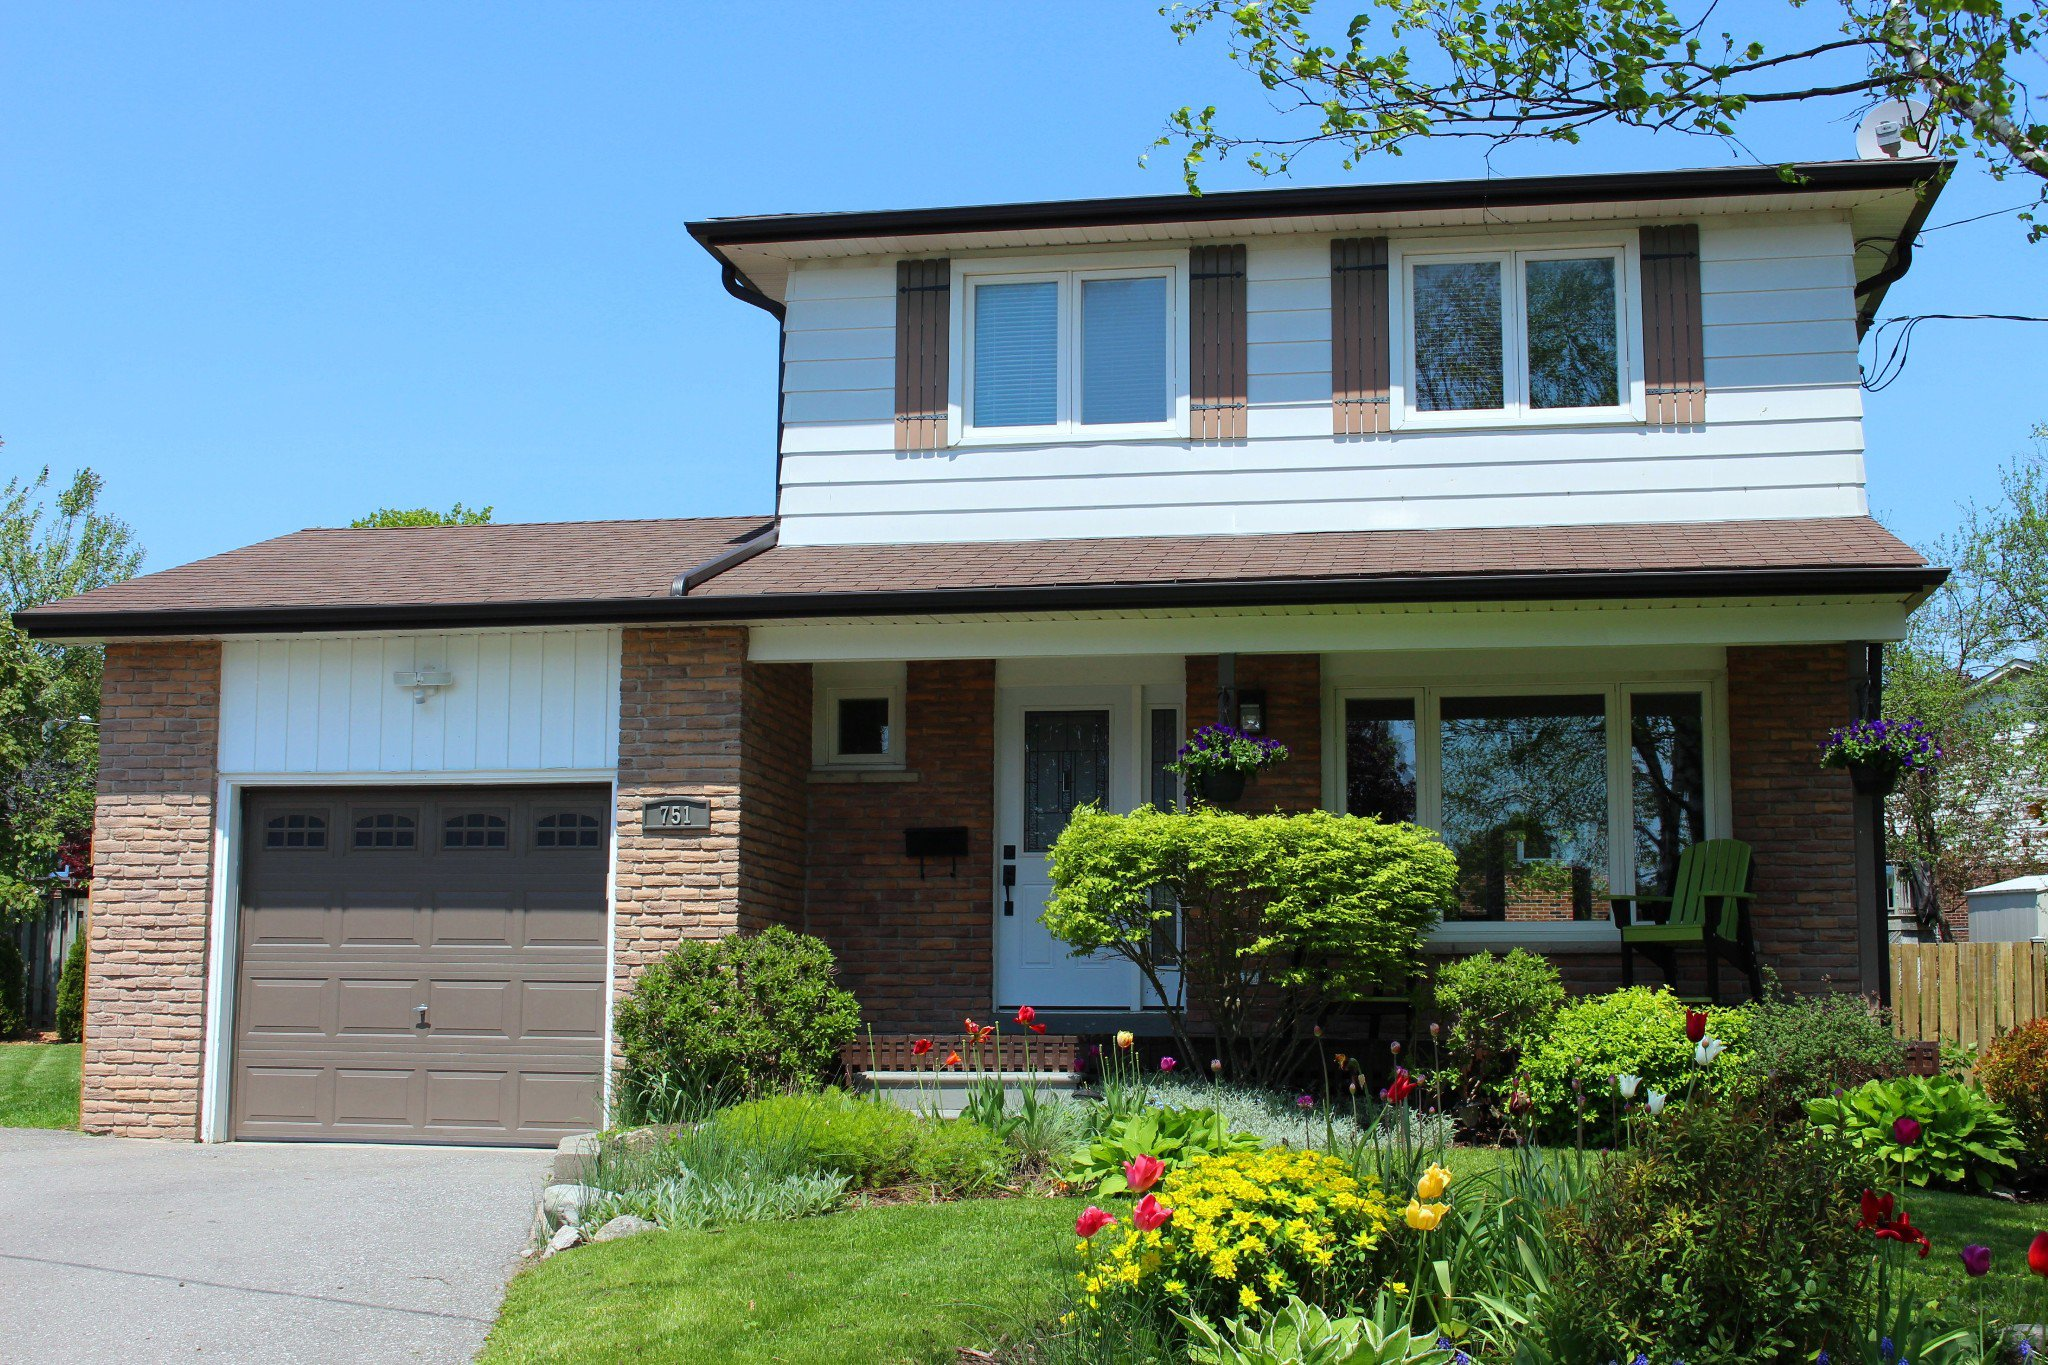 Photo 47: Photos: 751 Spragge Crescent in Cobourg: Residential Detached for sale : MLS®# 1291056